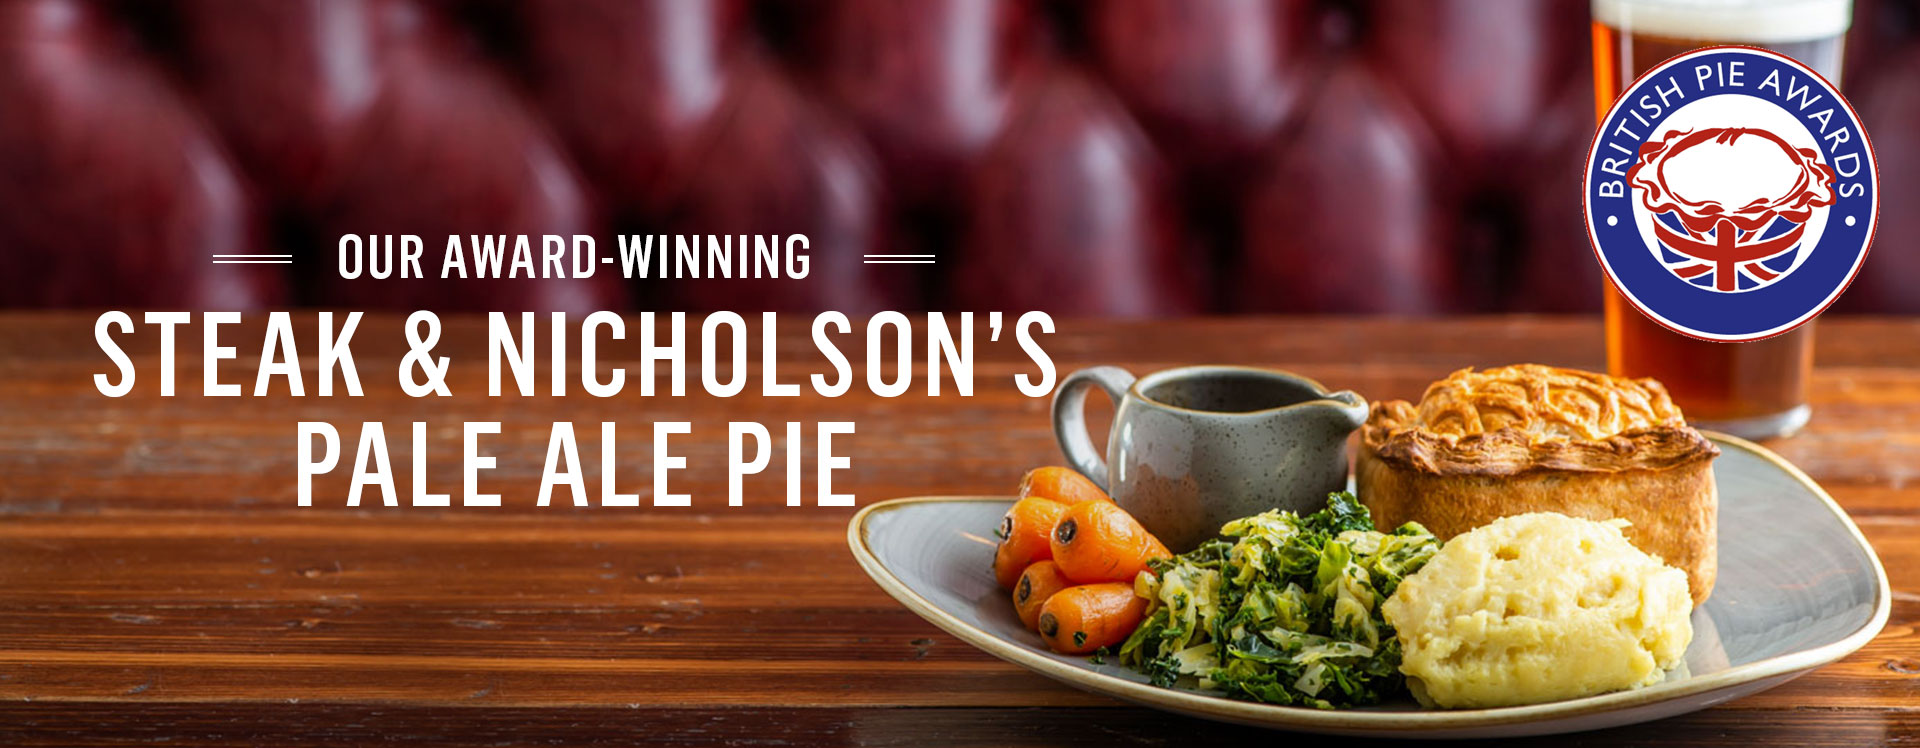 Award Winning Pies at The Railway Tavern